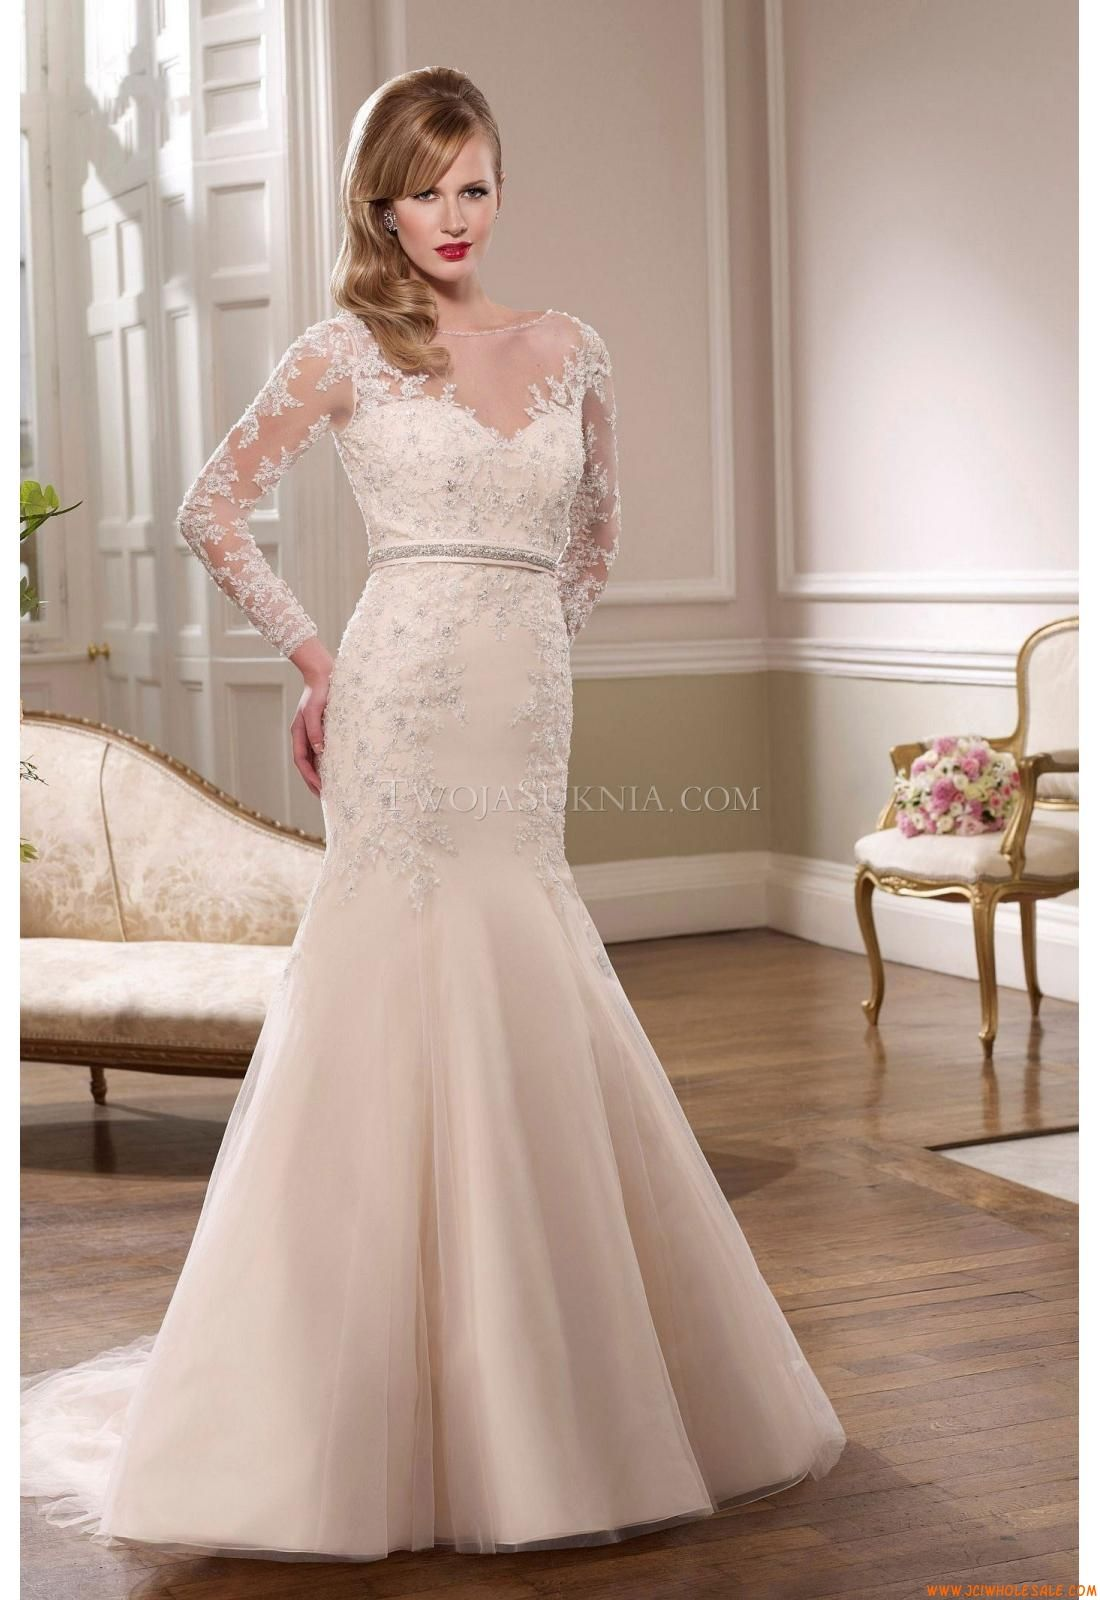 Robe de mariee ronald joyce 67056 2014 robe de mariee for Ronald joyce wedding dresses prices